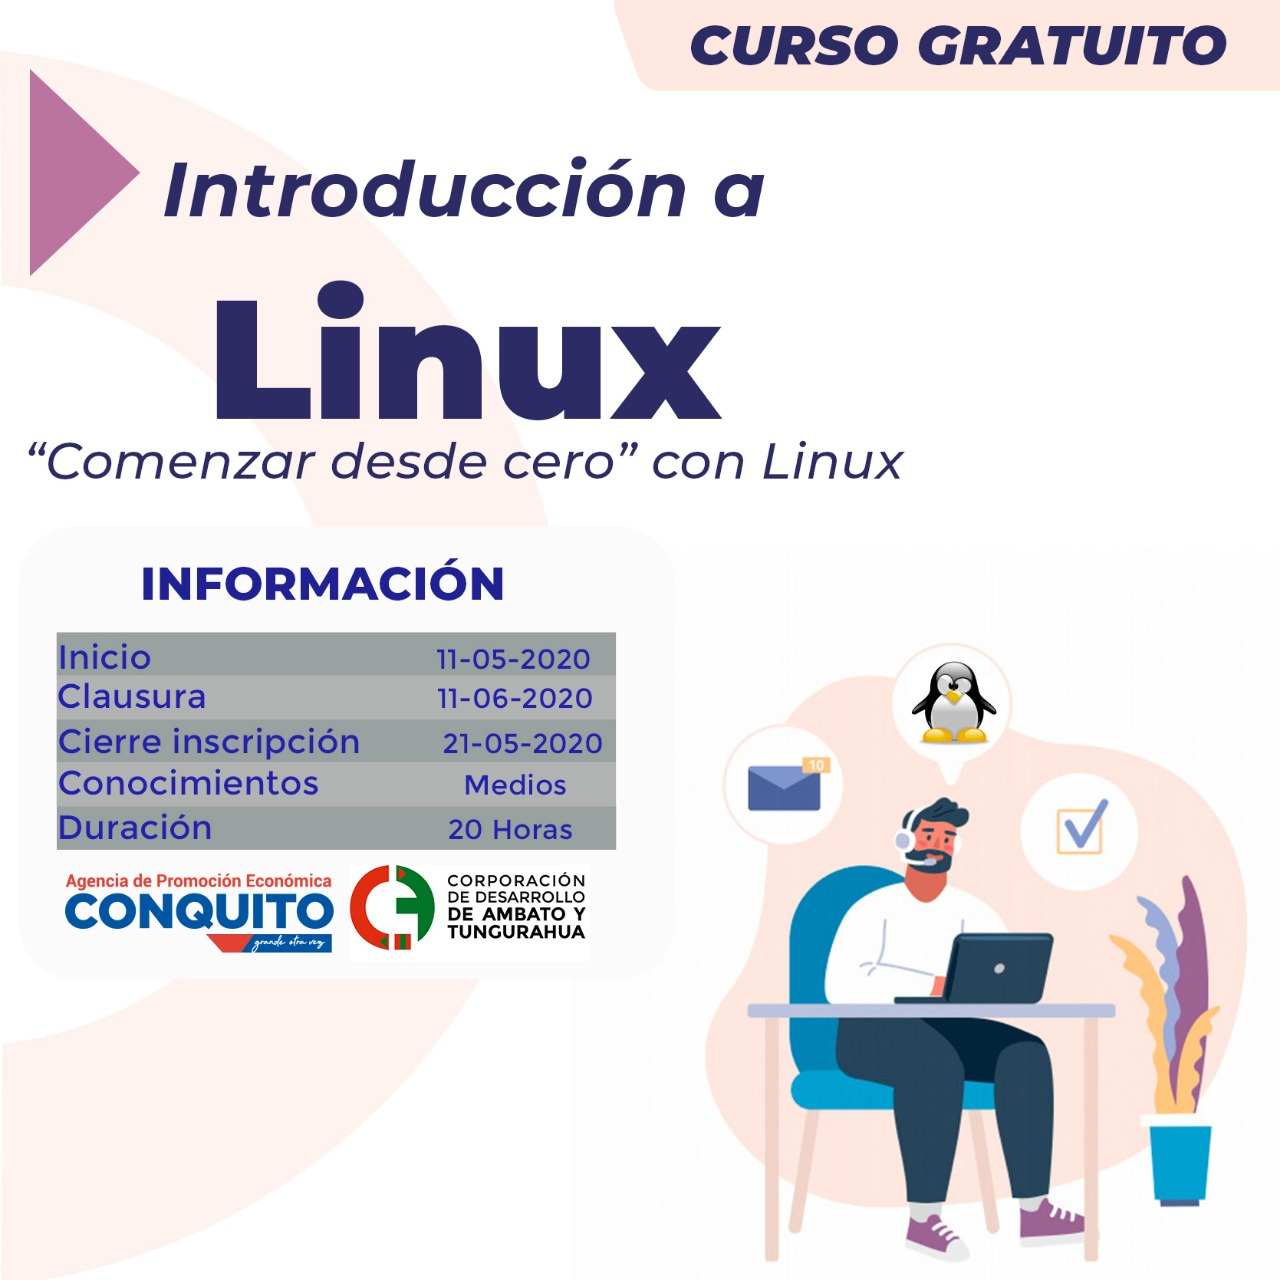 course_img